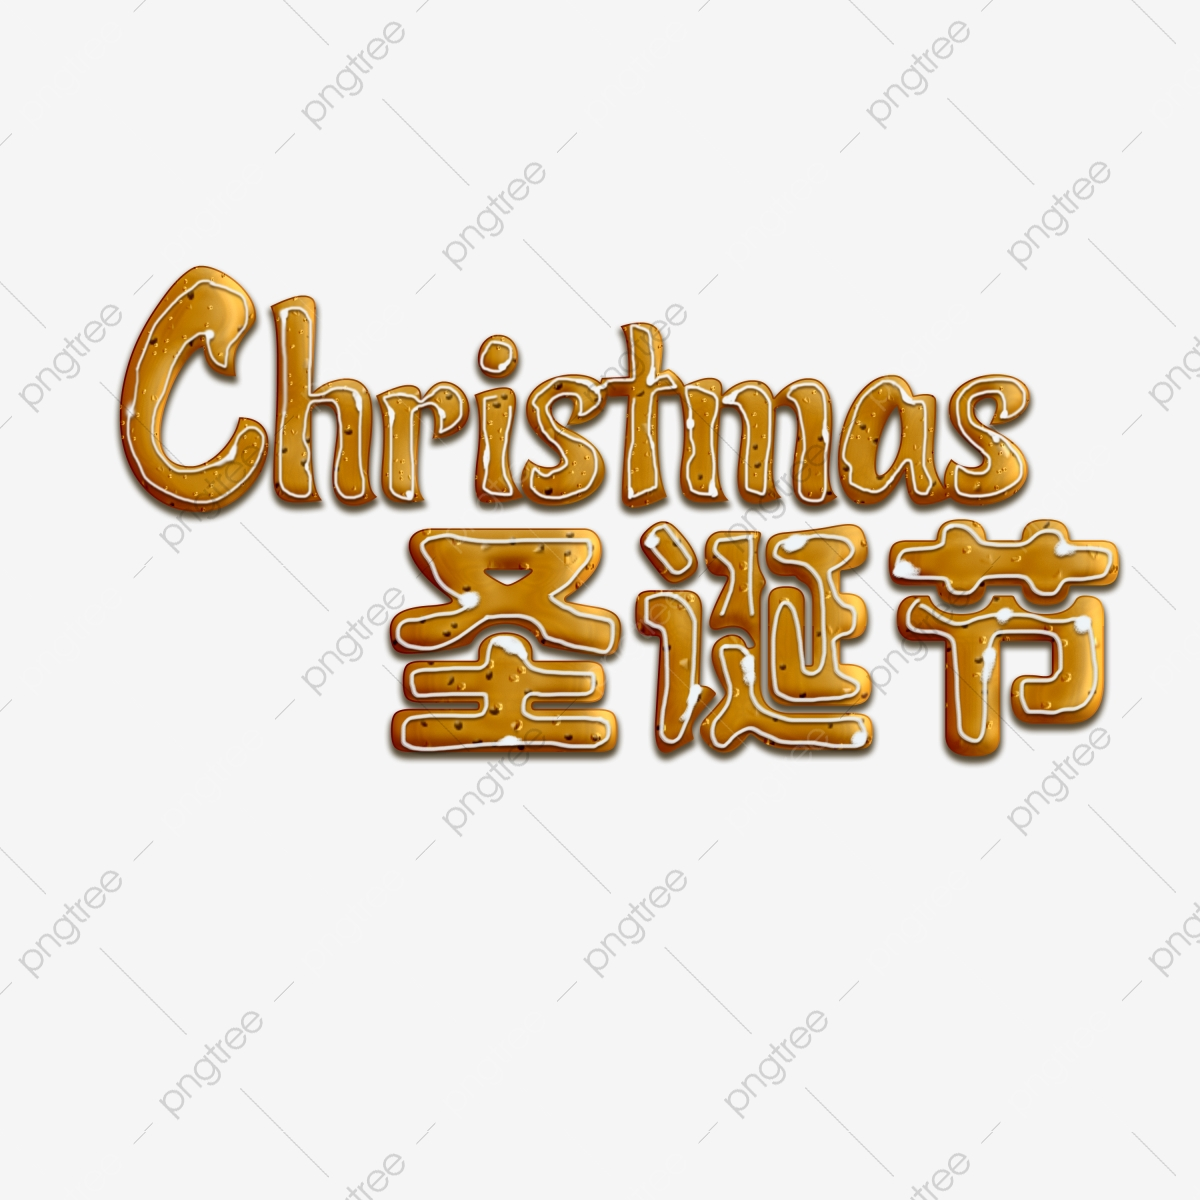 Merry Christmas Christmas Fonts Fonts Font Design Png Transparent Clipart Image And Psd File For Free Download